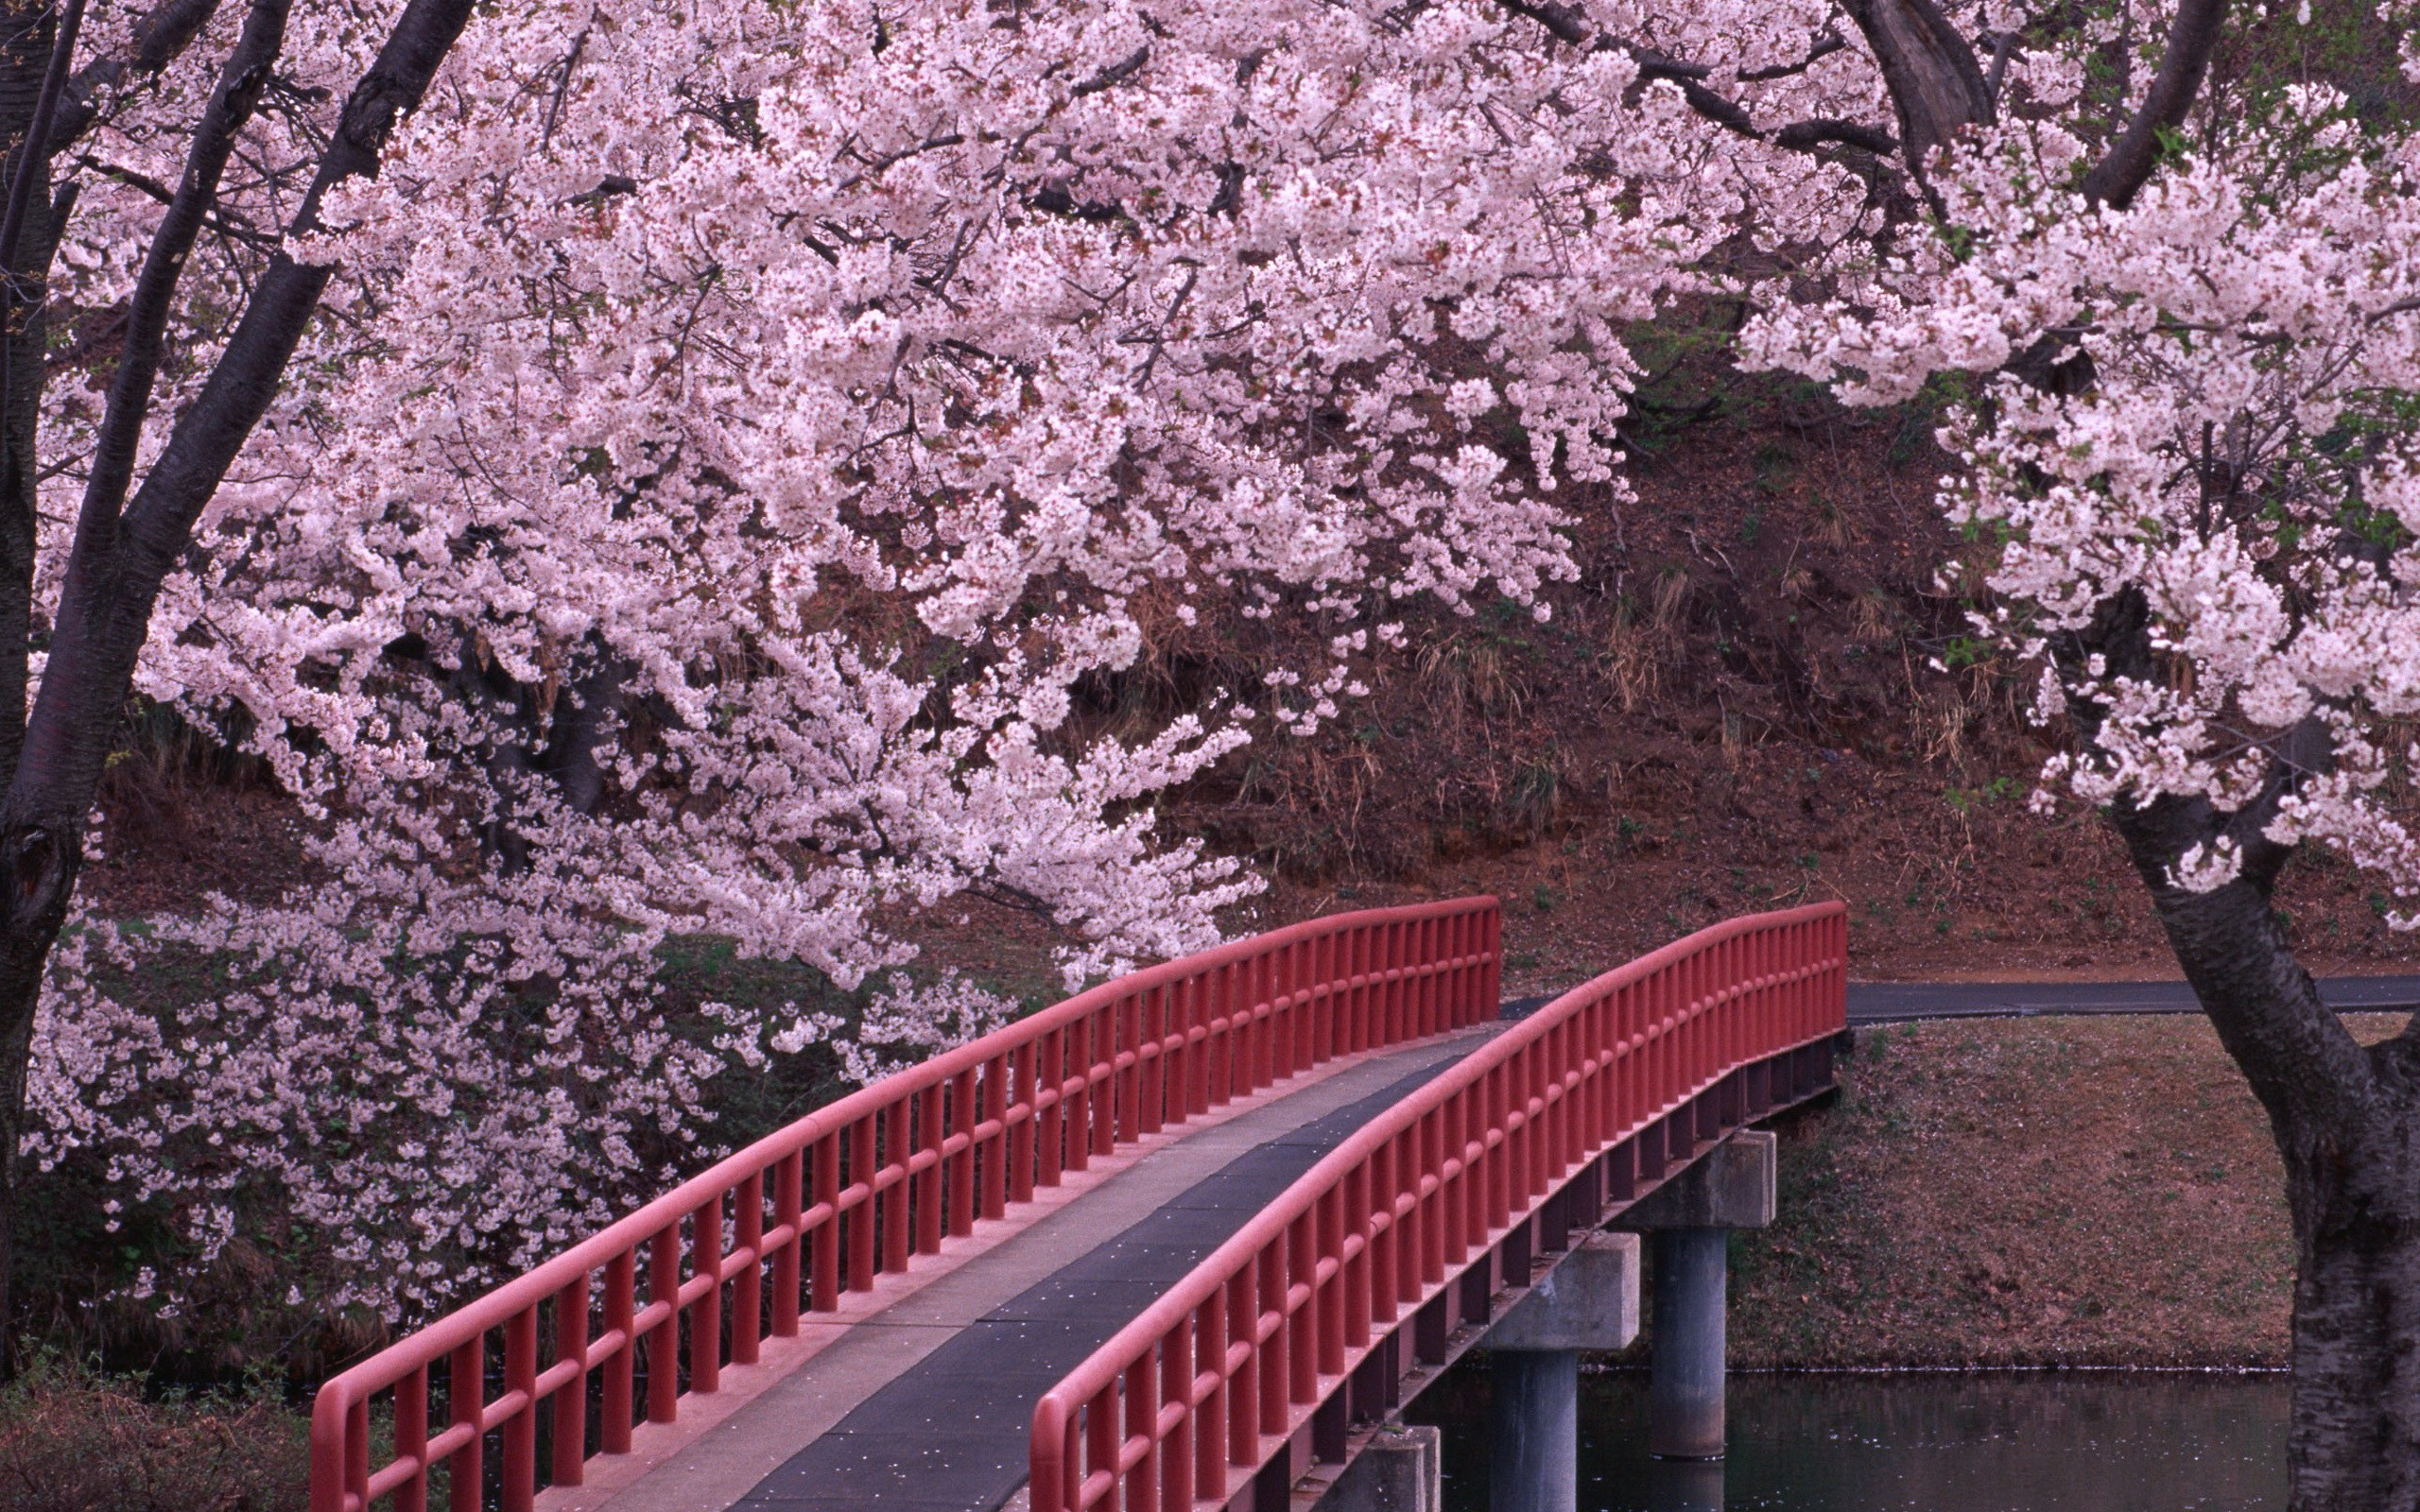 Cherry Blossom in Japan Wallpaper in High Resolution at Flowers 2560x1600